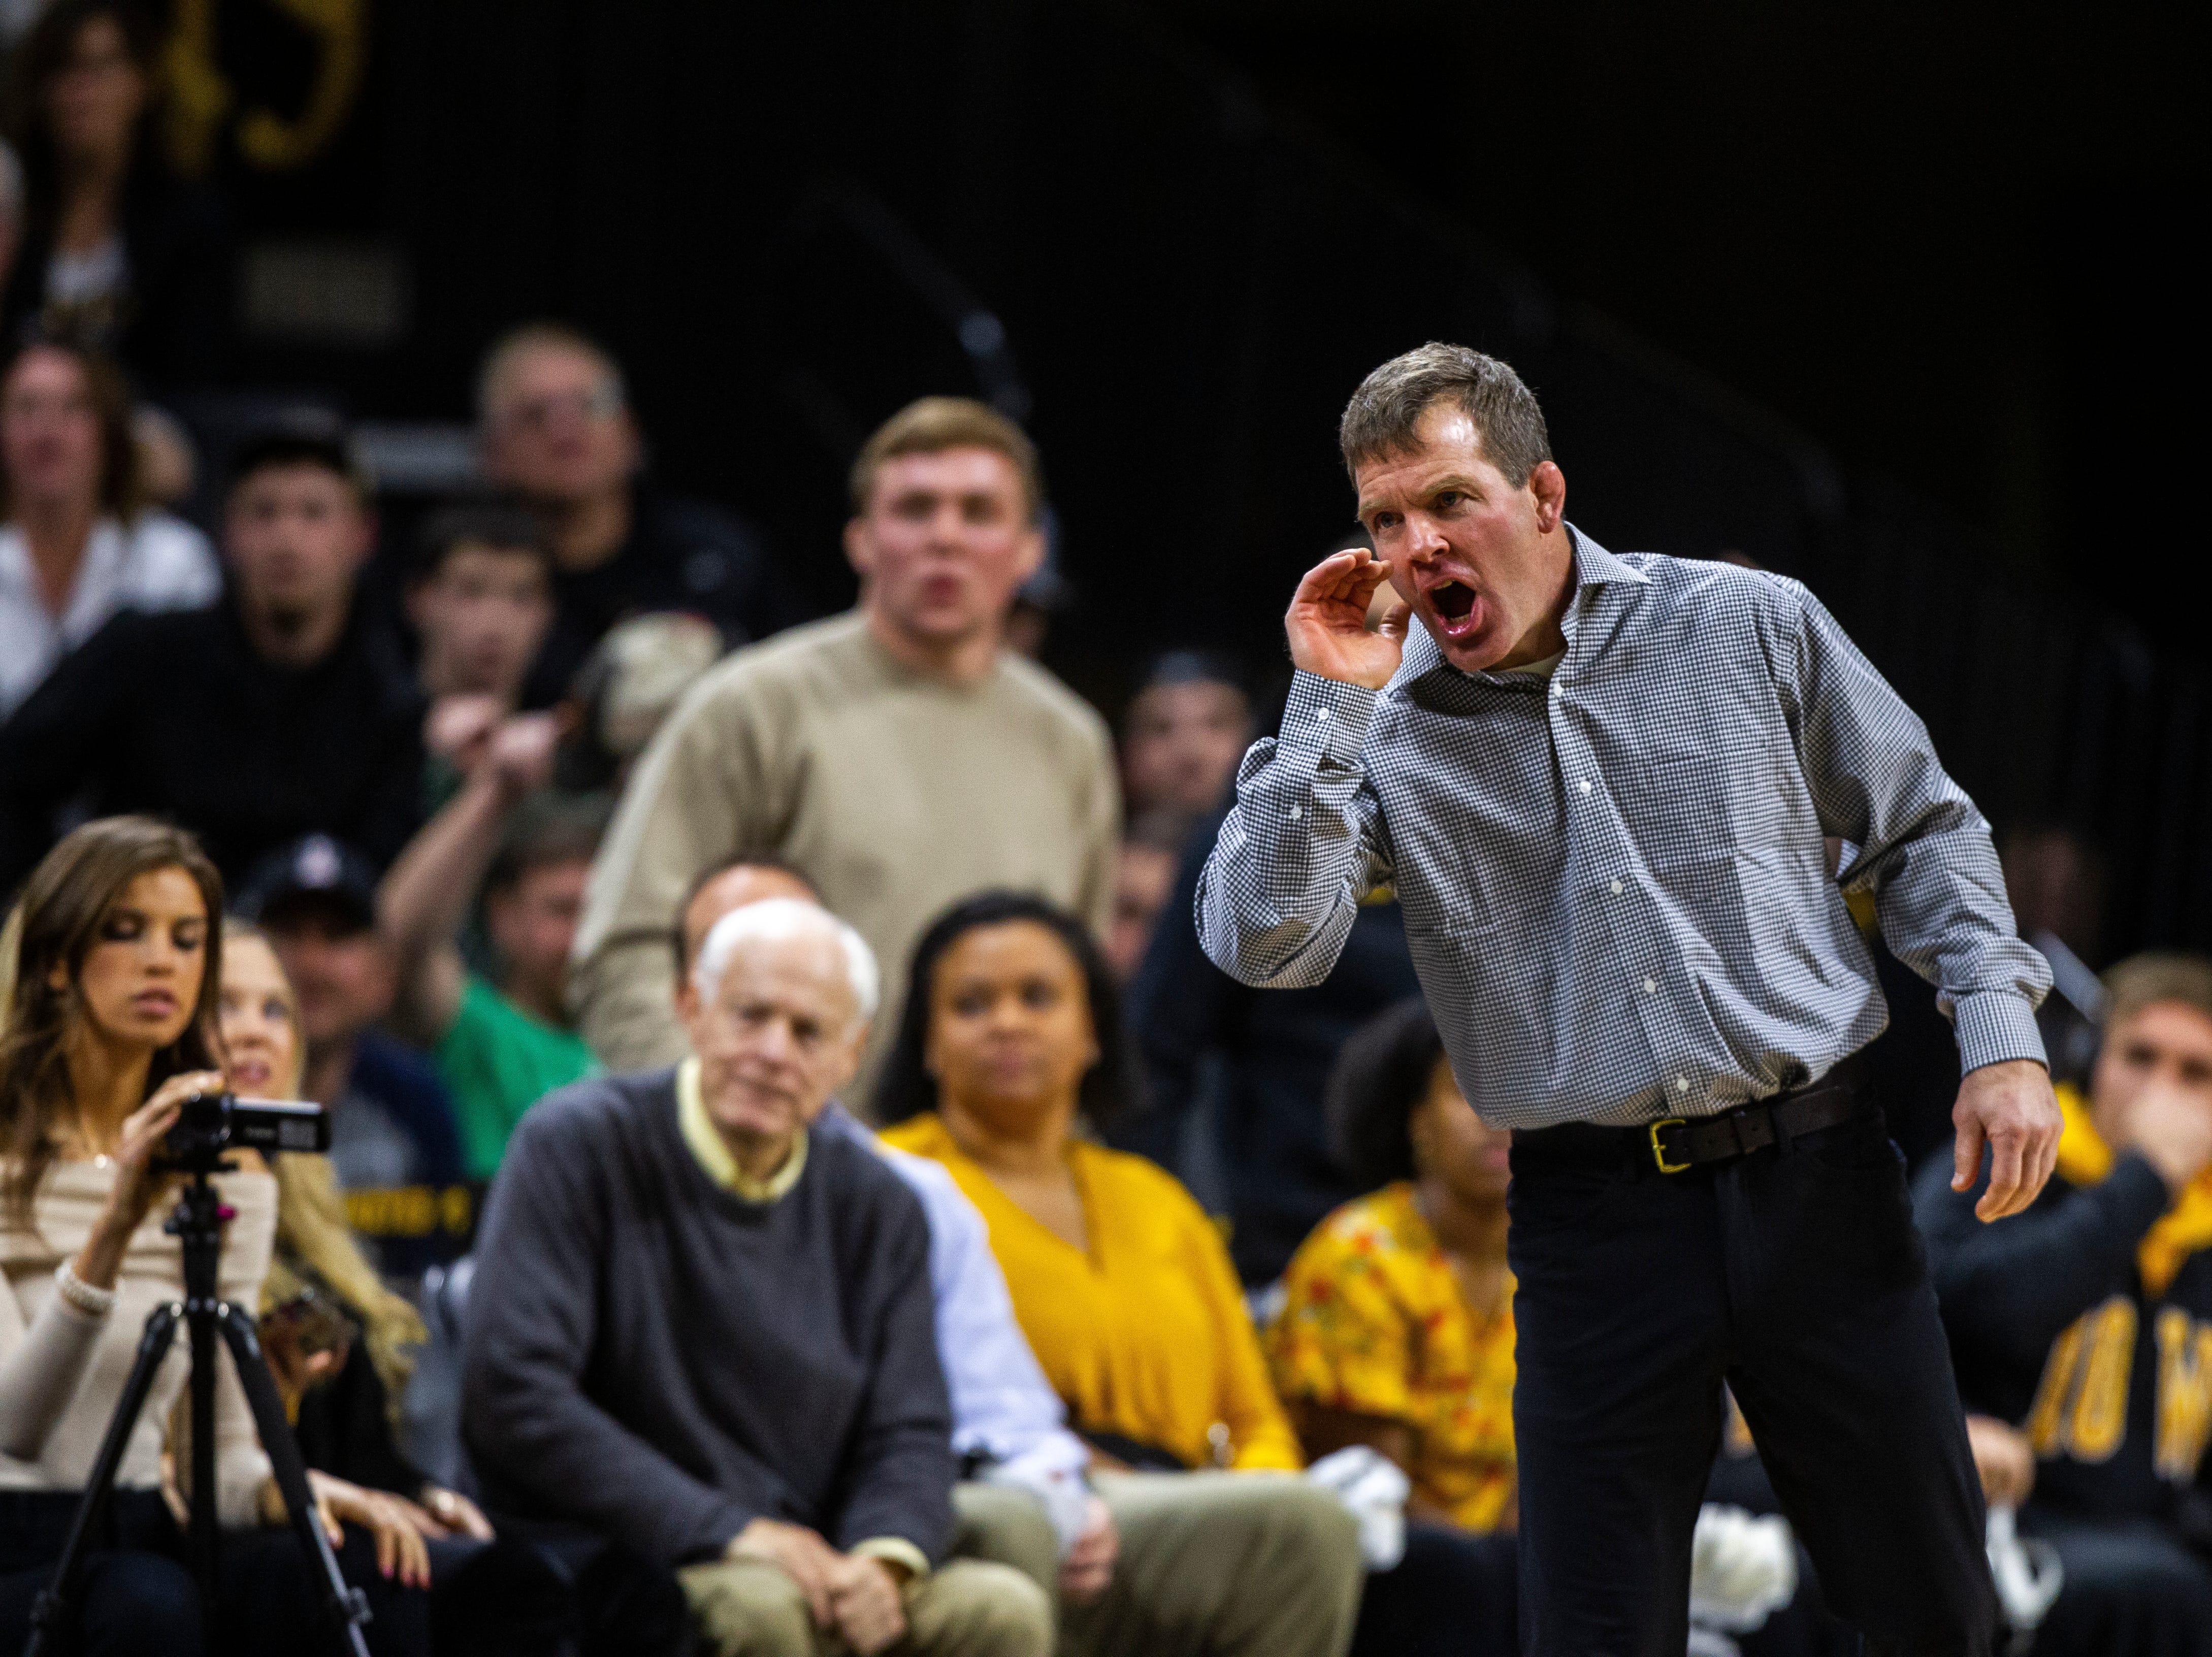 Iowa associate head coach Terry Brands calls out during an NCAA wrestle dual on Friday, Nov. 16, 2018, at Carver-Hawkeye Arena in Iowa City.